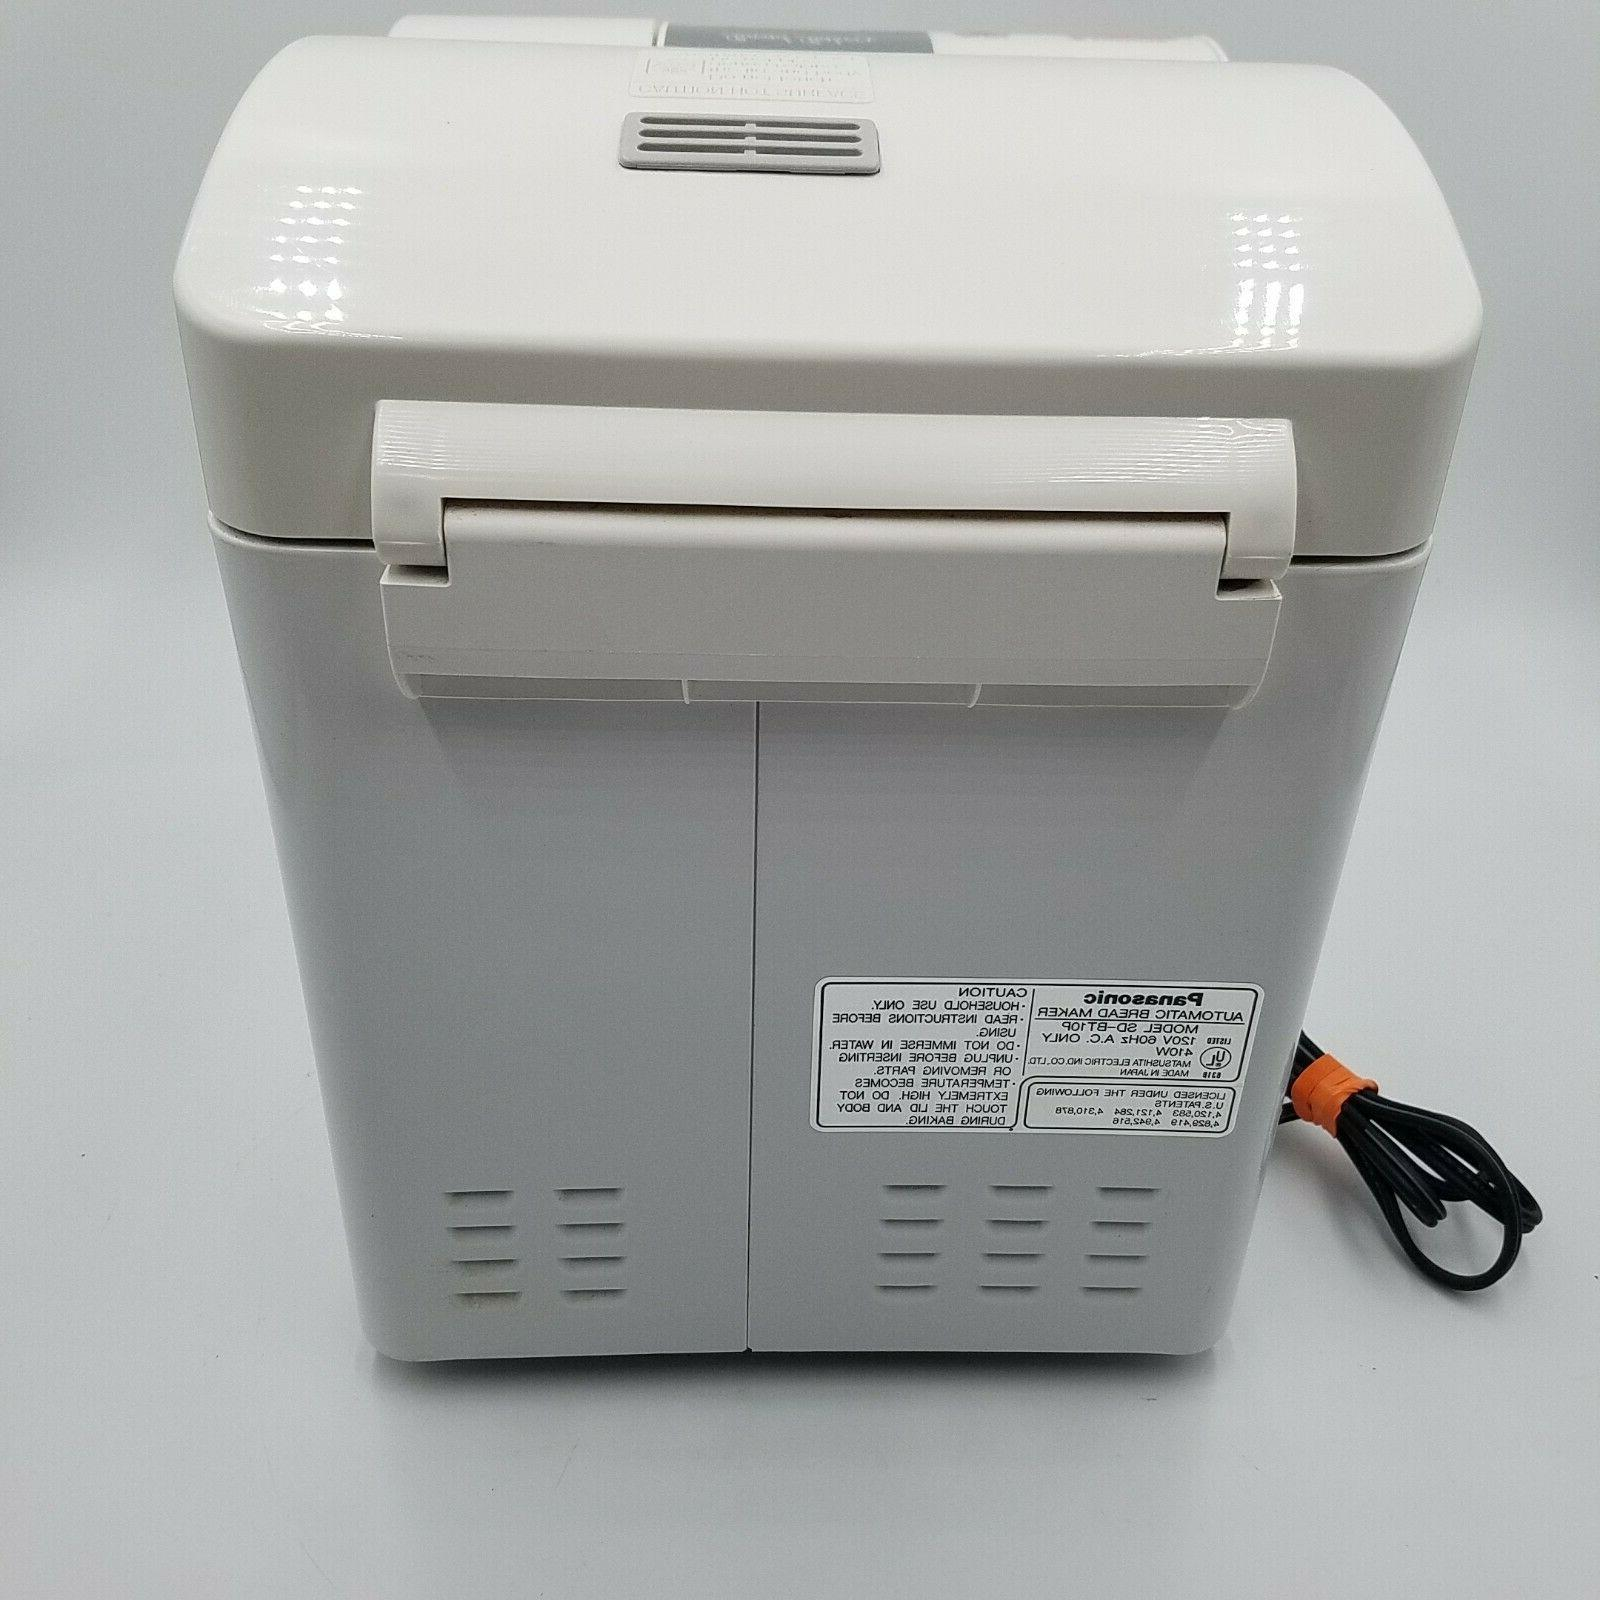 Panasonic SD-BT10P 1 lb Japan Machine